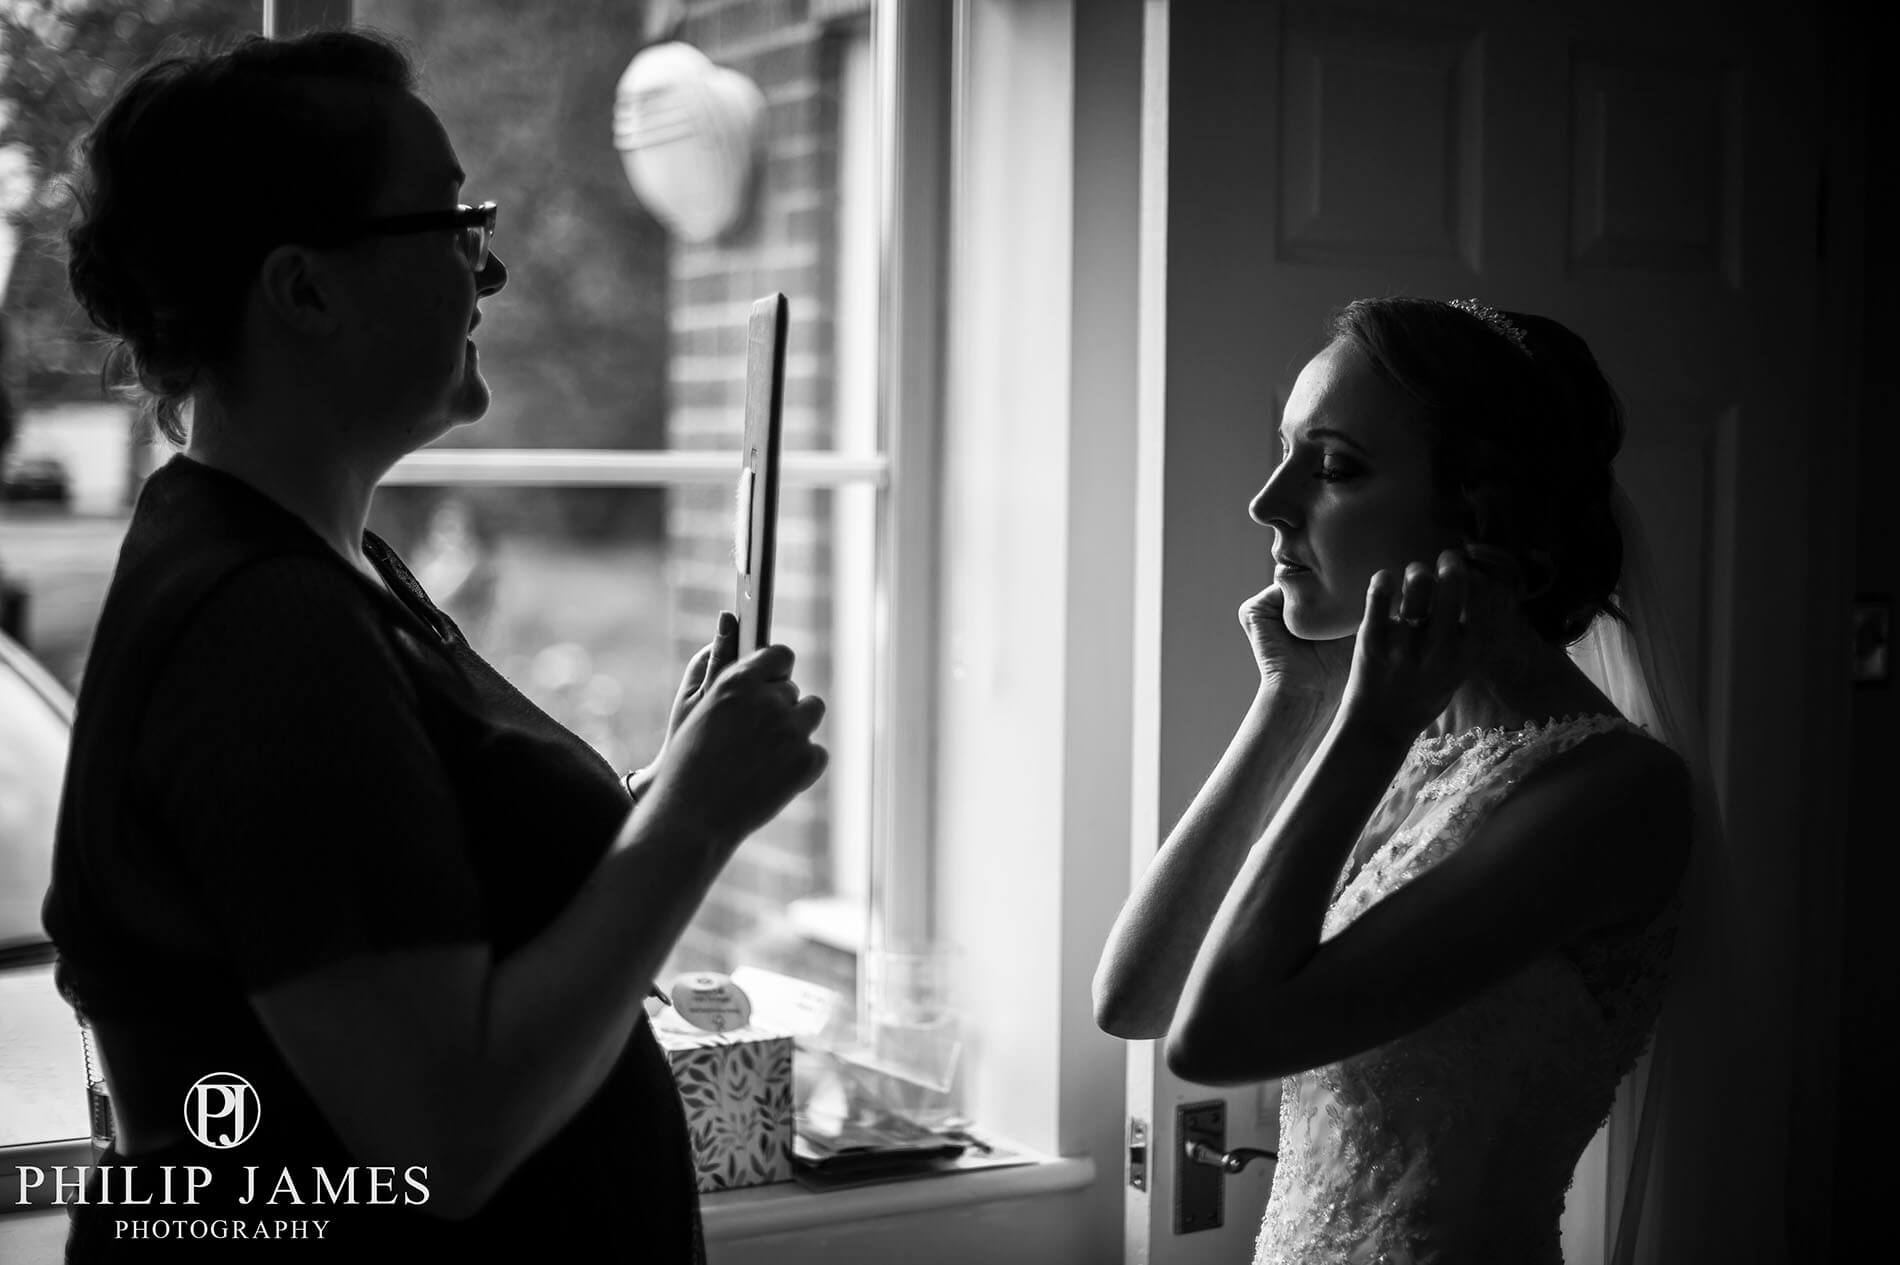 Philip James specializing in Wedding Photography Birmingham - Moments (112 of 170)